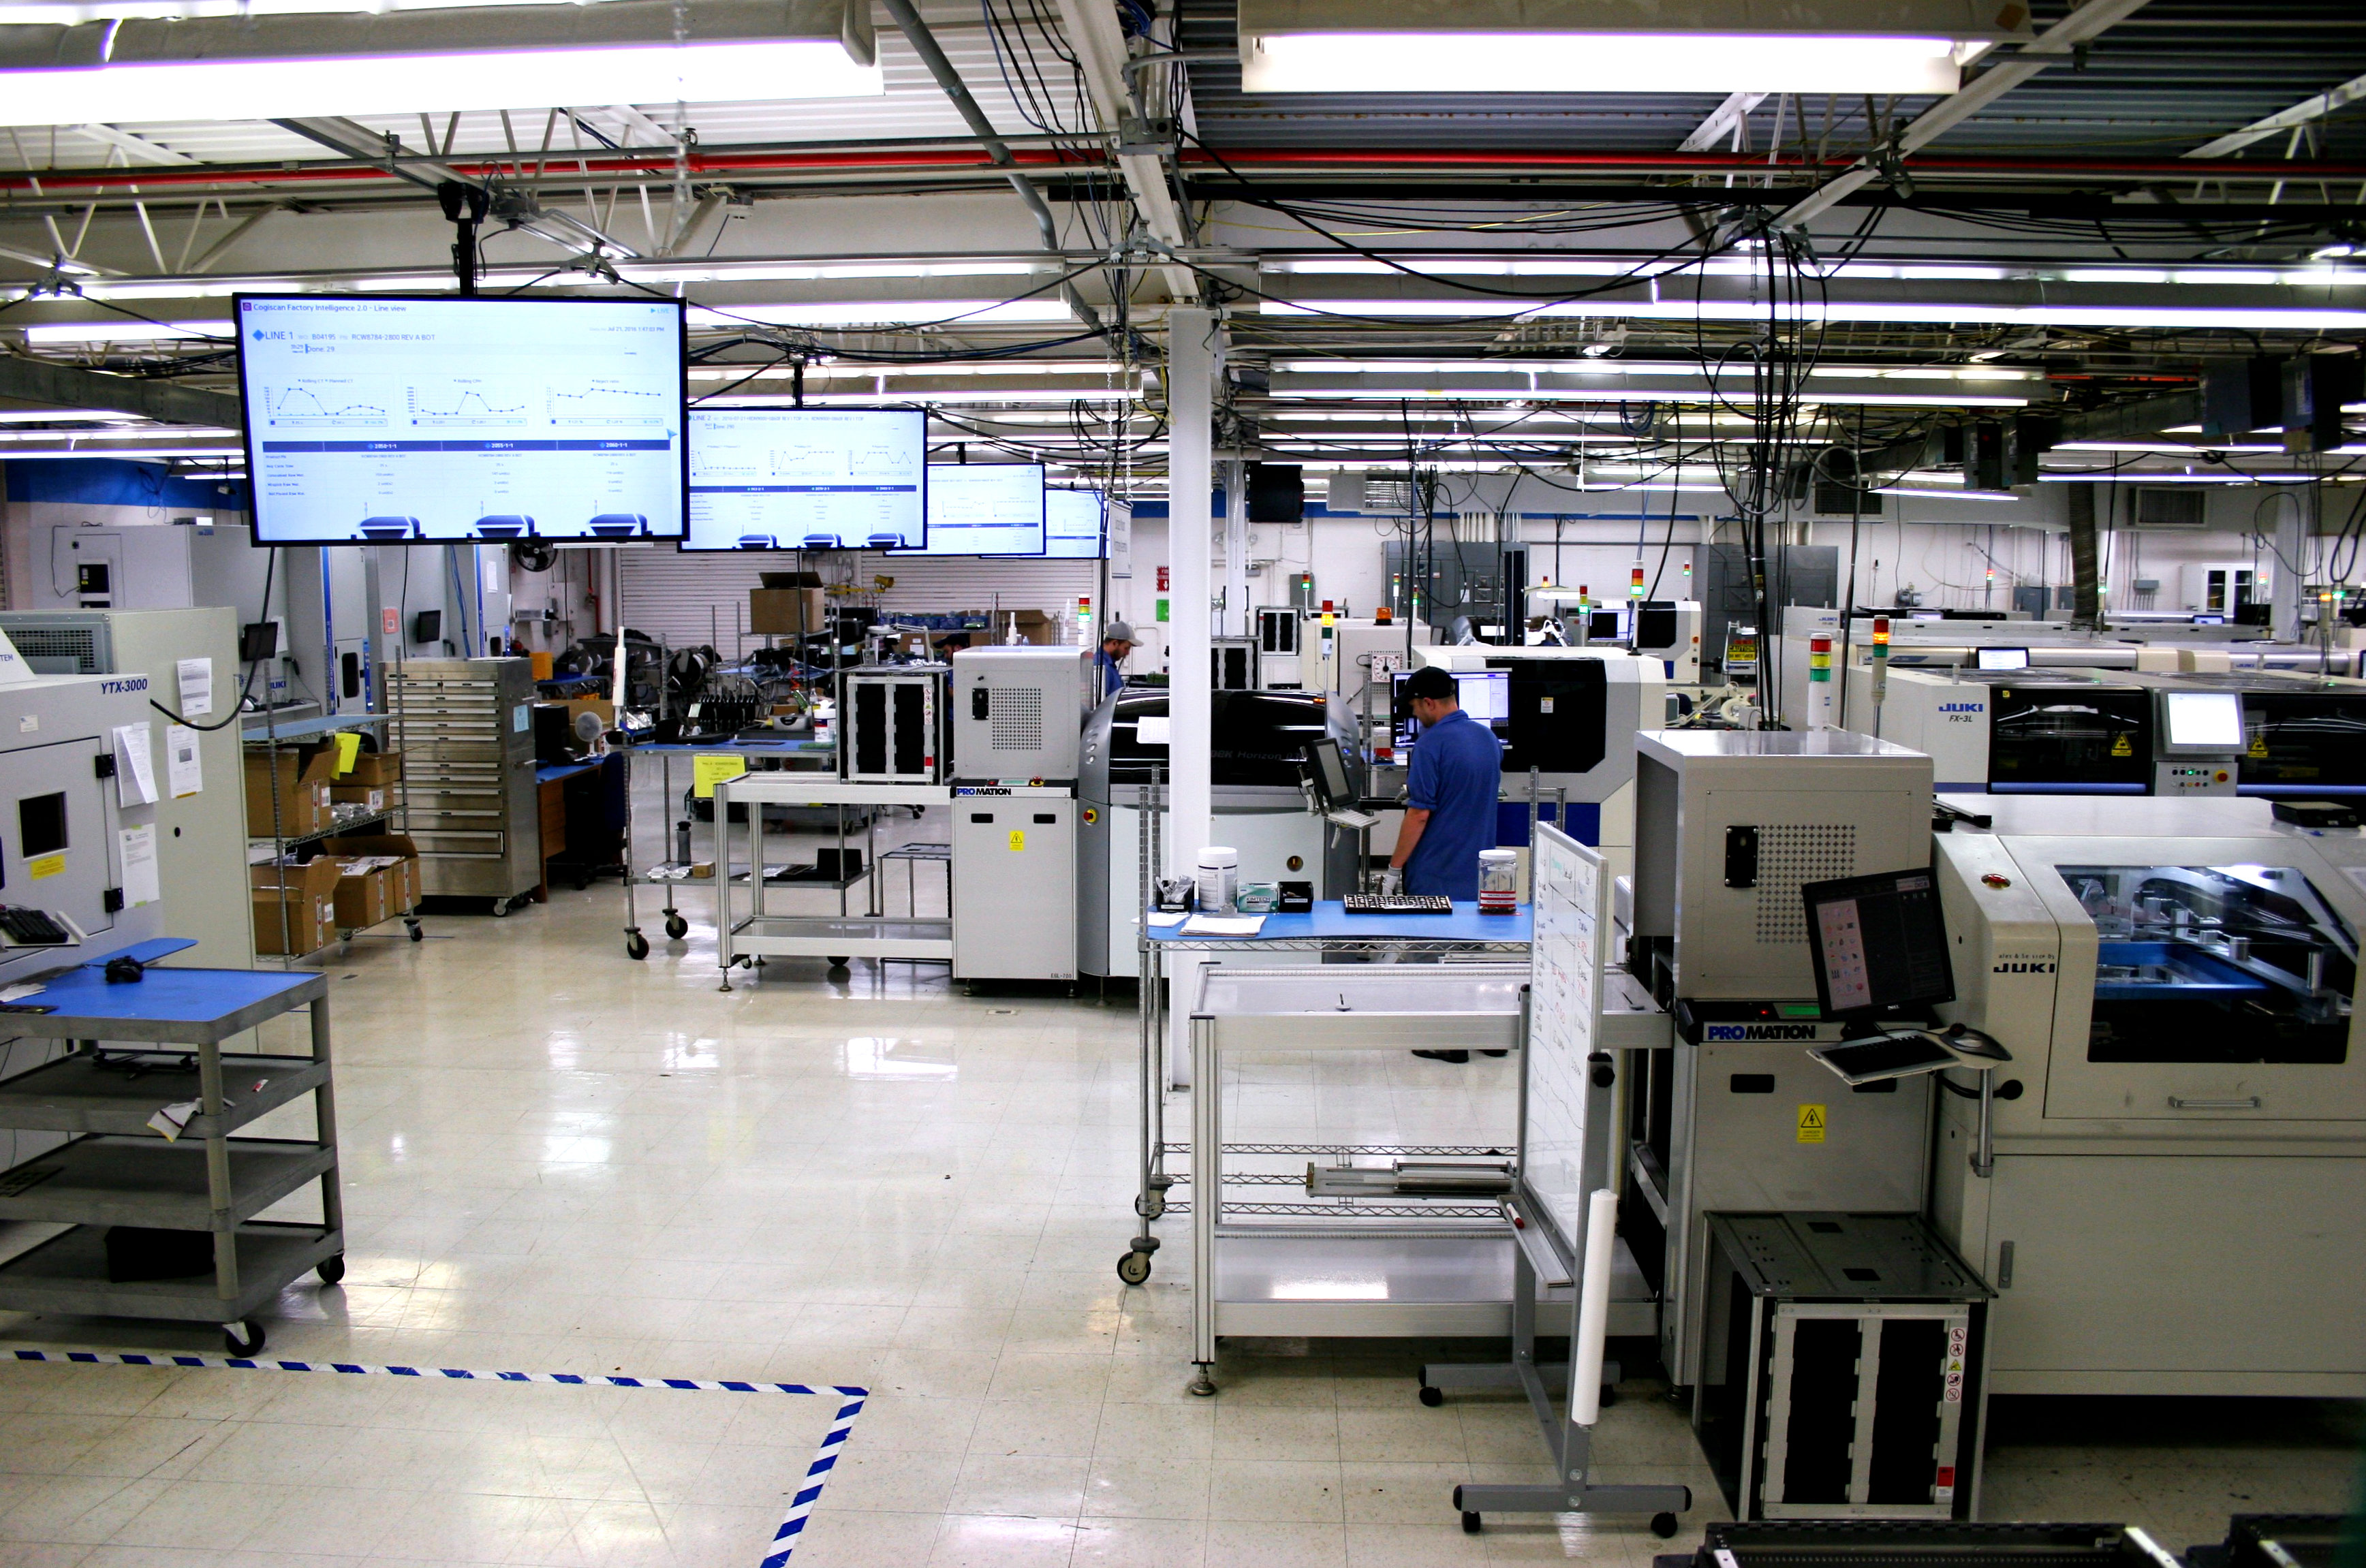 Cogiscan Factory Intelligence system